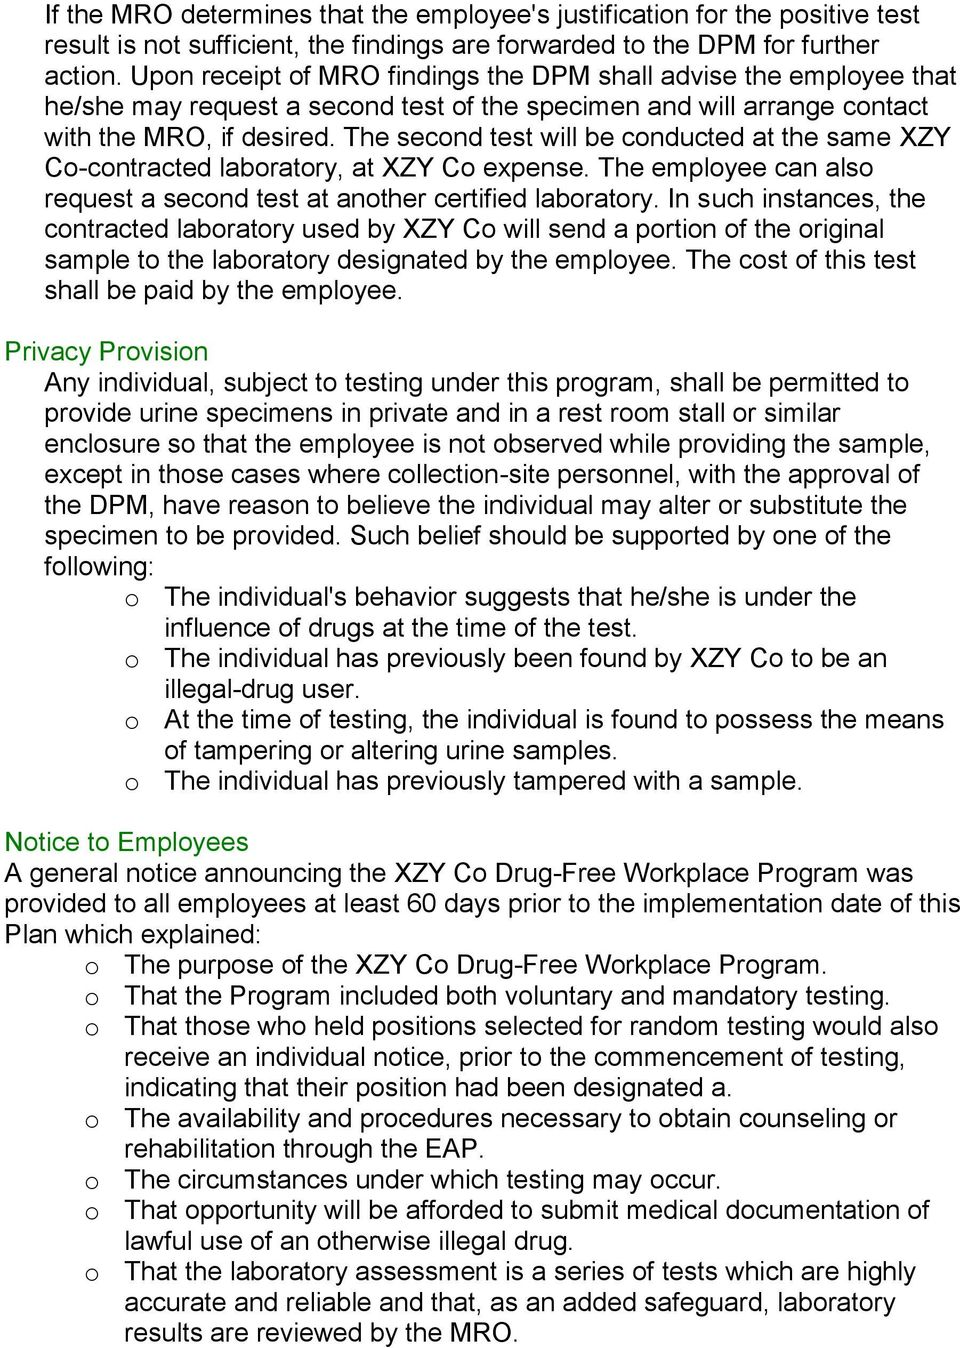 The second test will be conducted at the same XZY Co-contracted laboratory, at XZY Co expense. The employee can also request a second test at another certified laboratory.